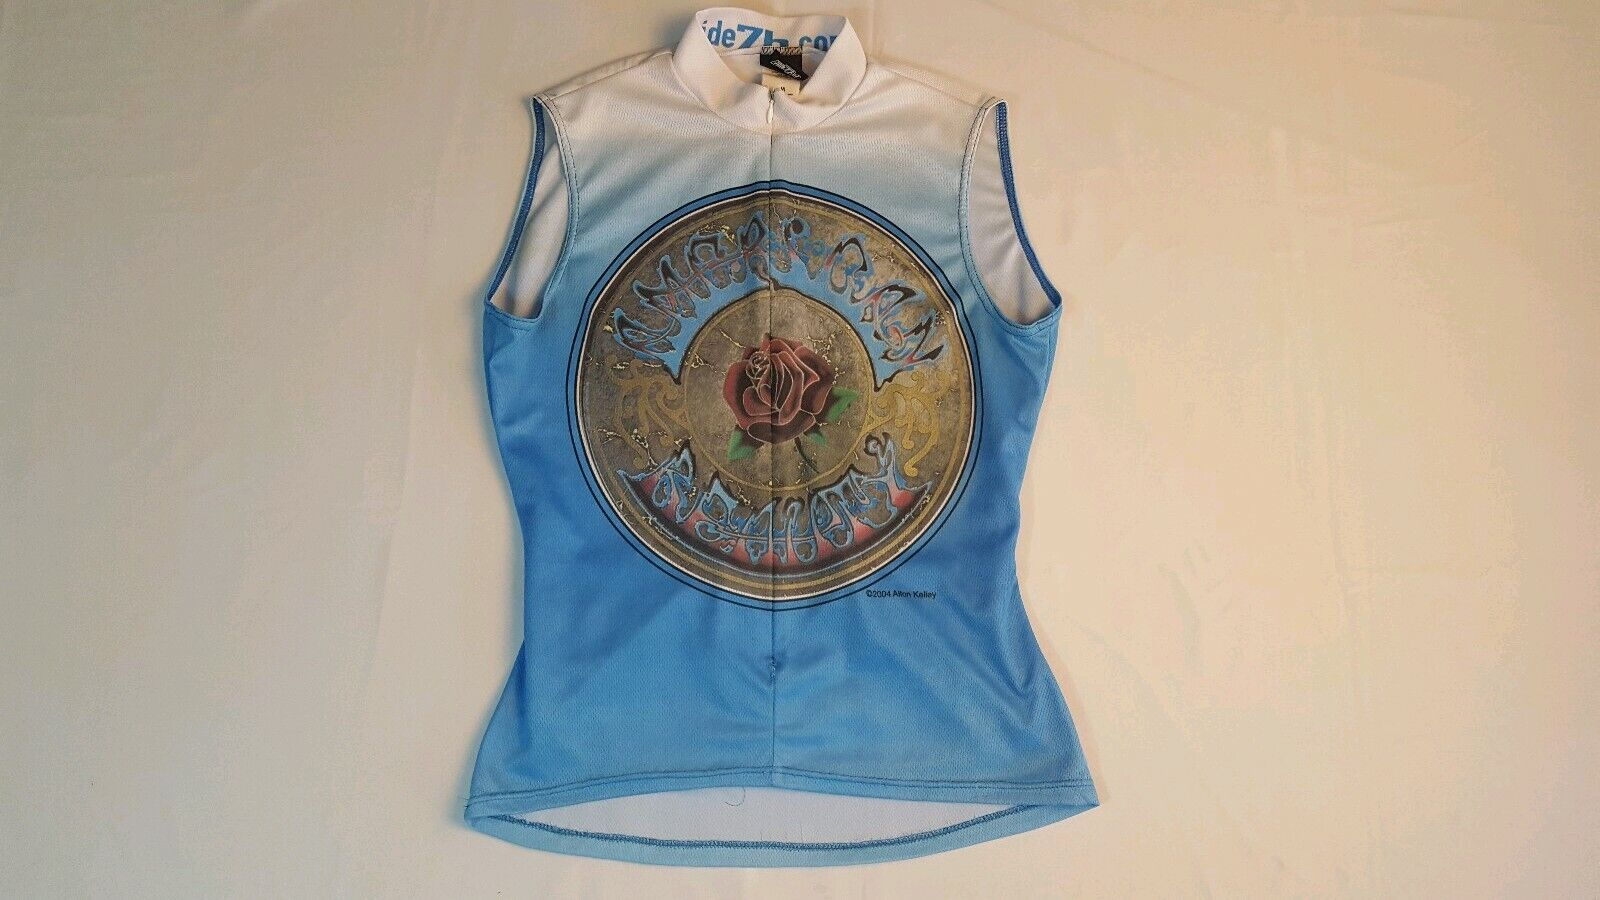 Grateful Dead Sleeveless Cycling Tee Size M 2004 American Beauty Biking Bike